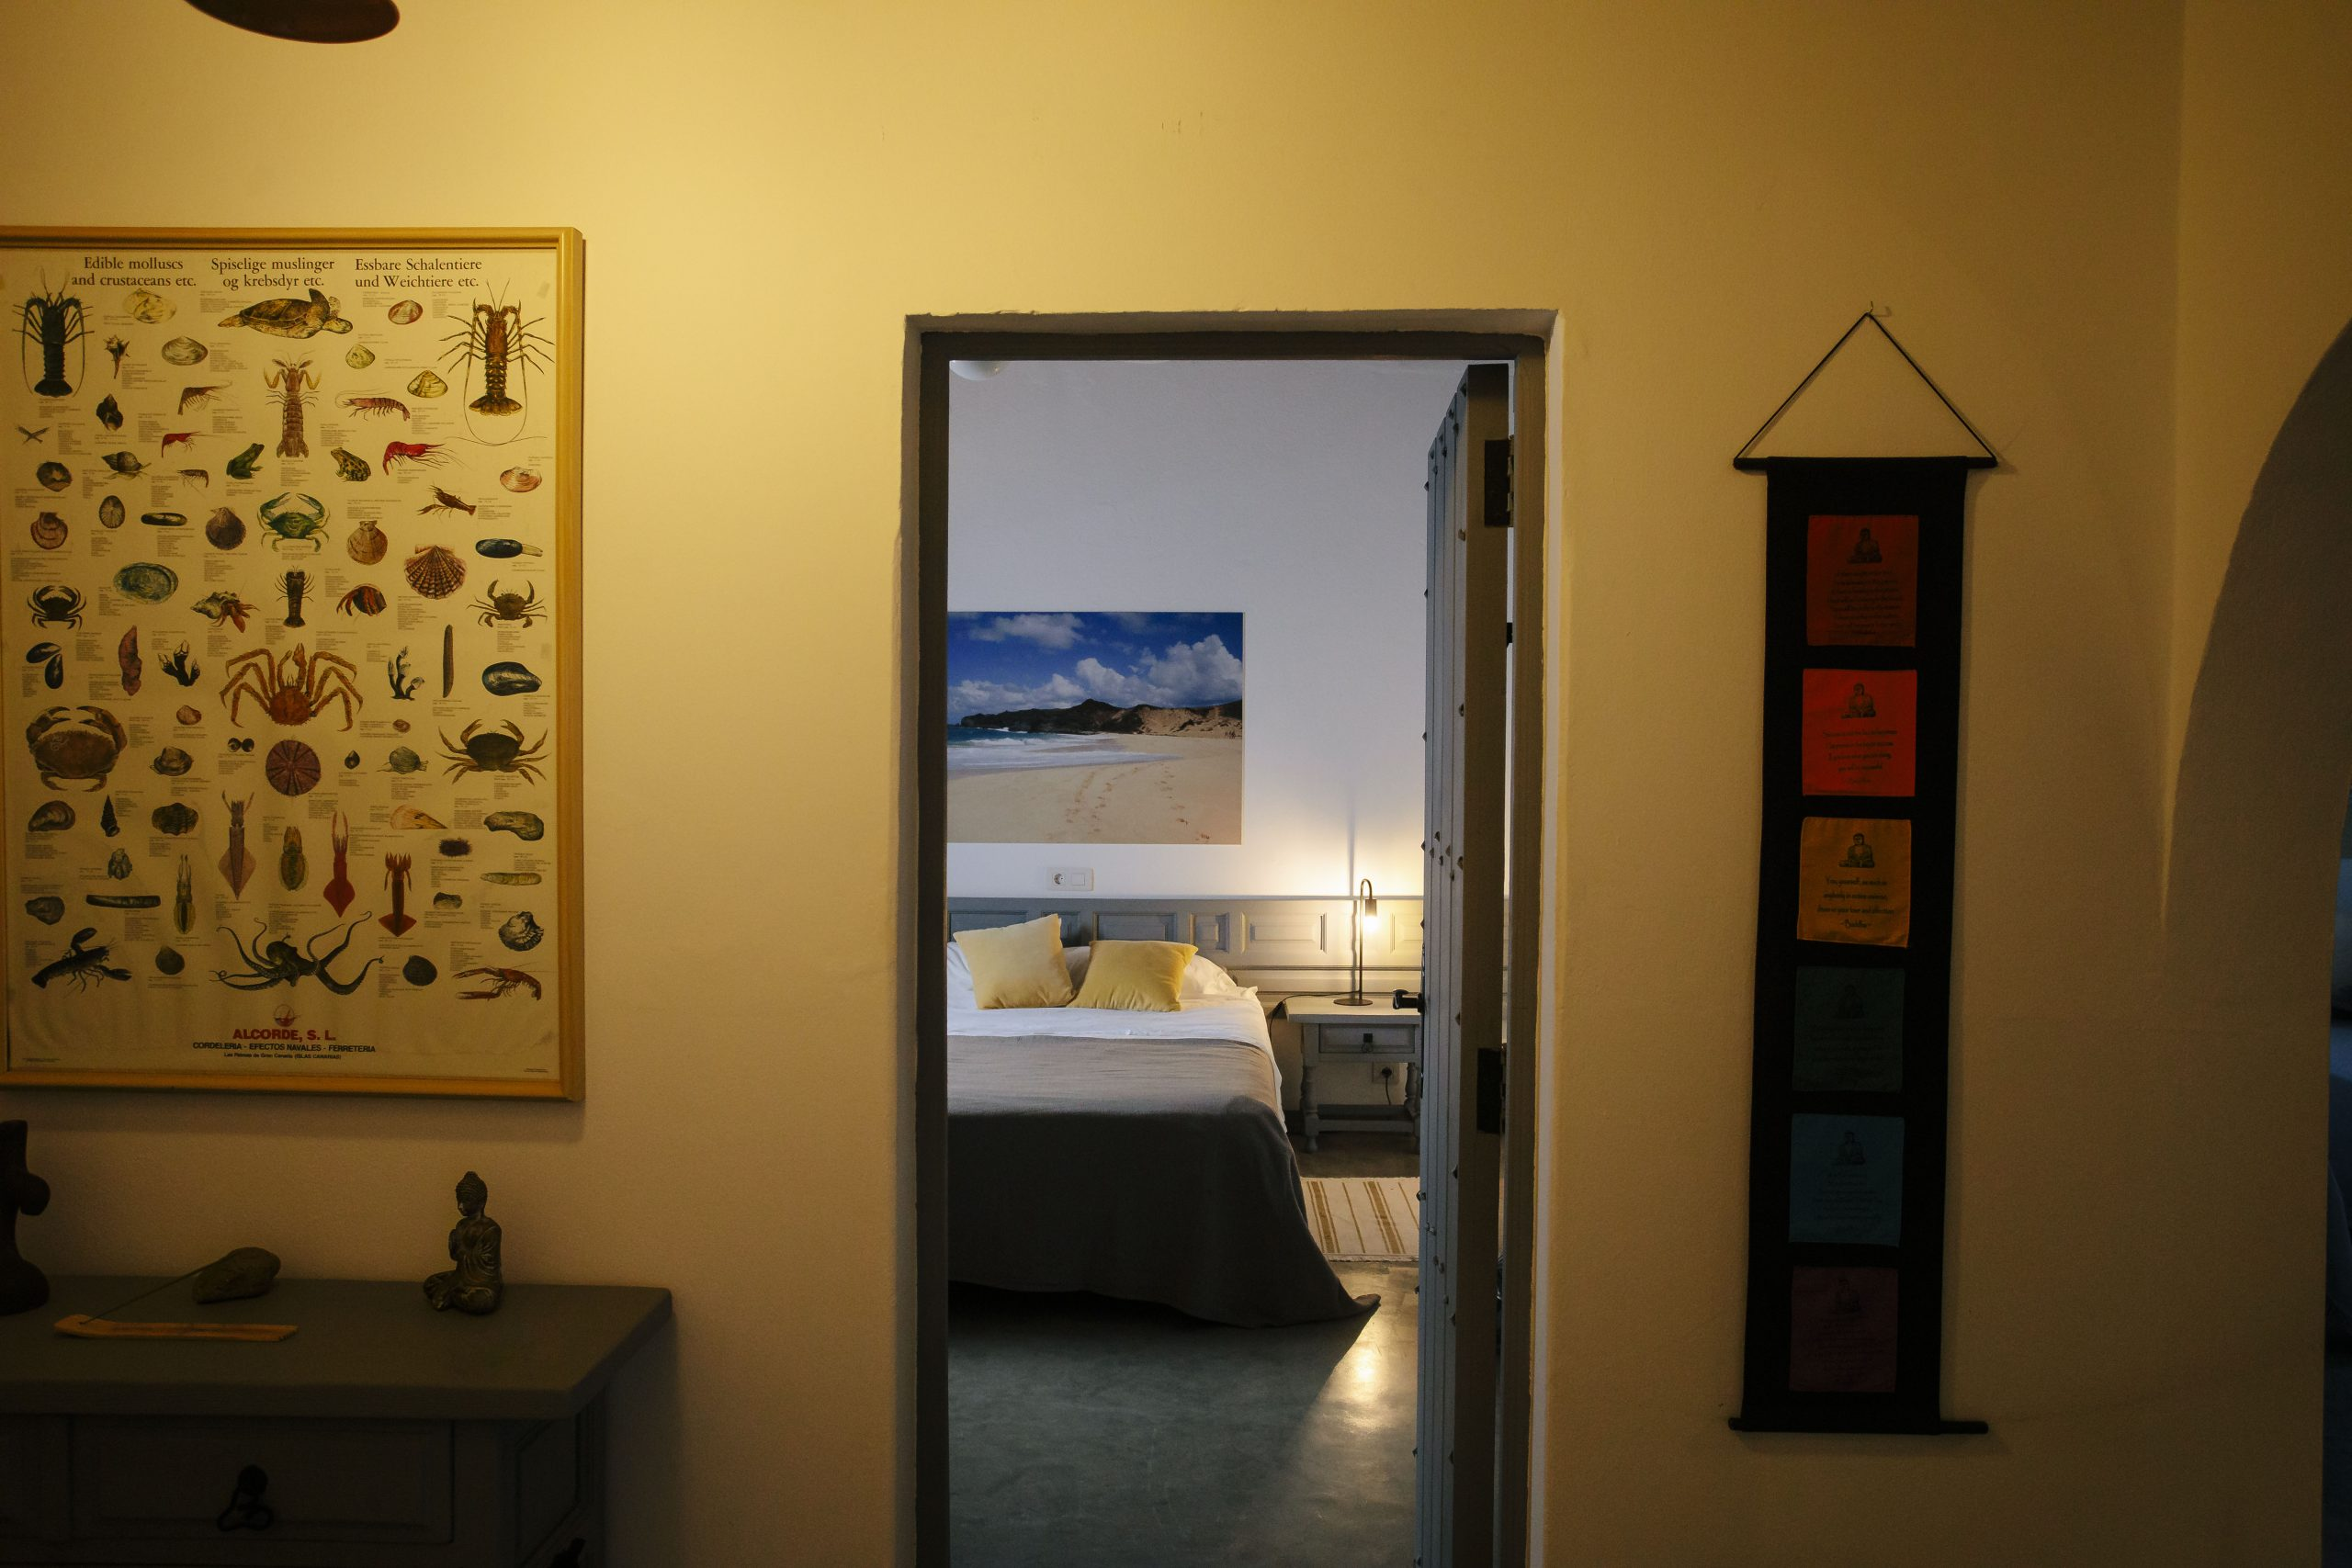 BEDROOM 1, VIEW FROM THE ENTRY